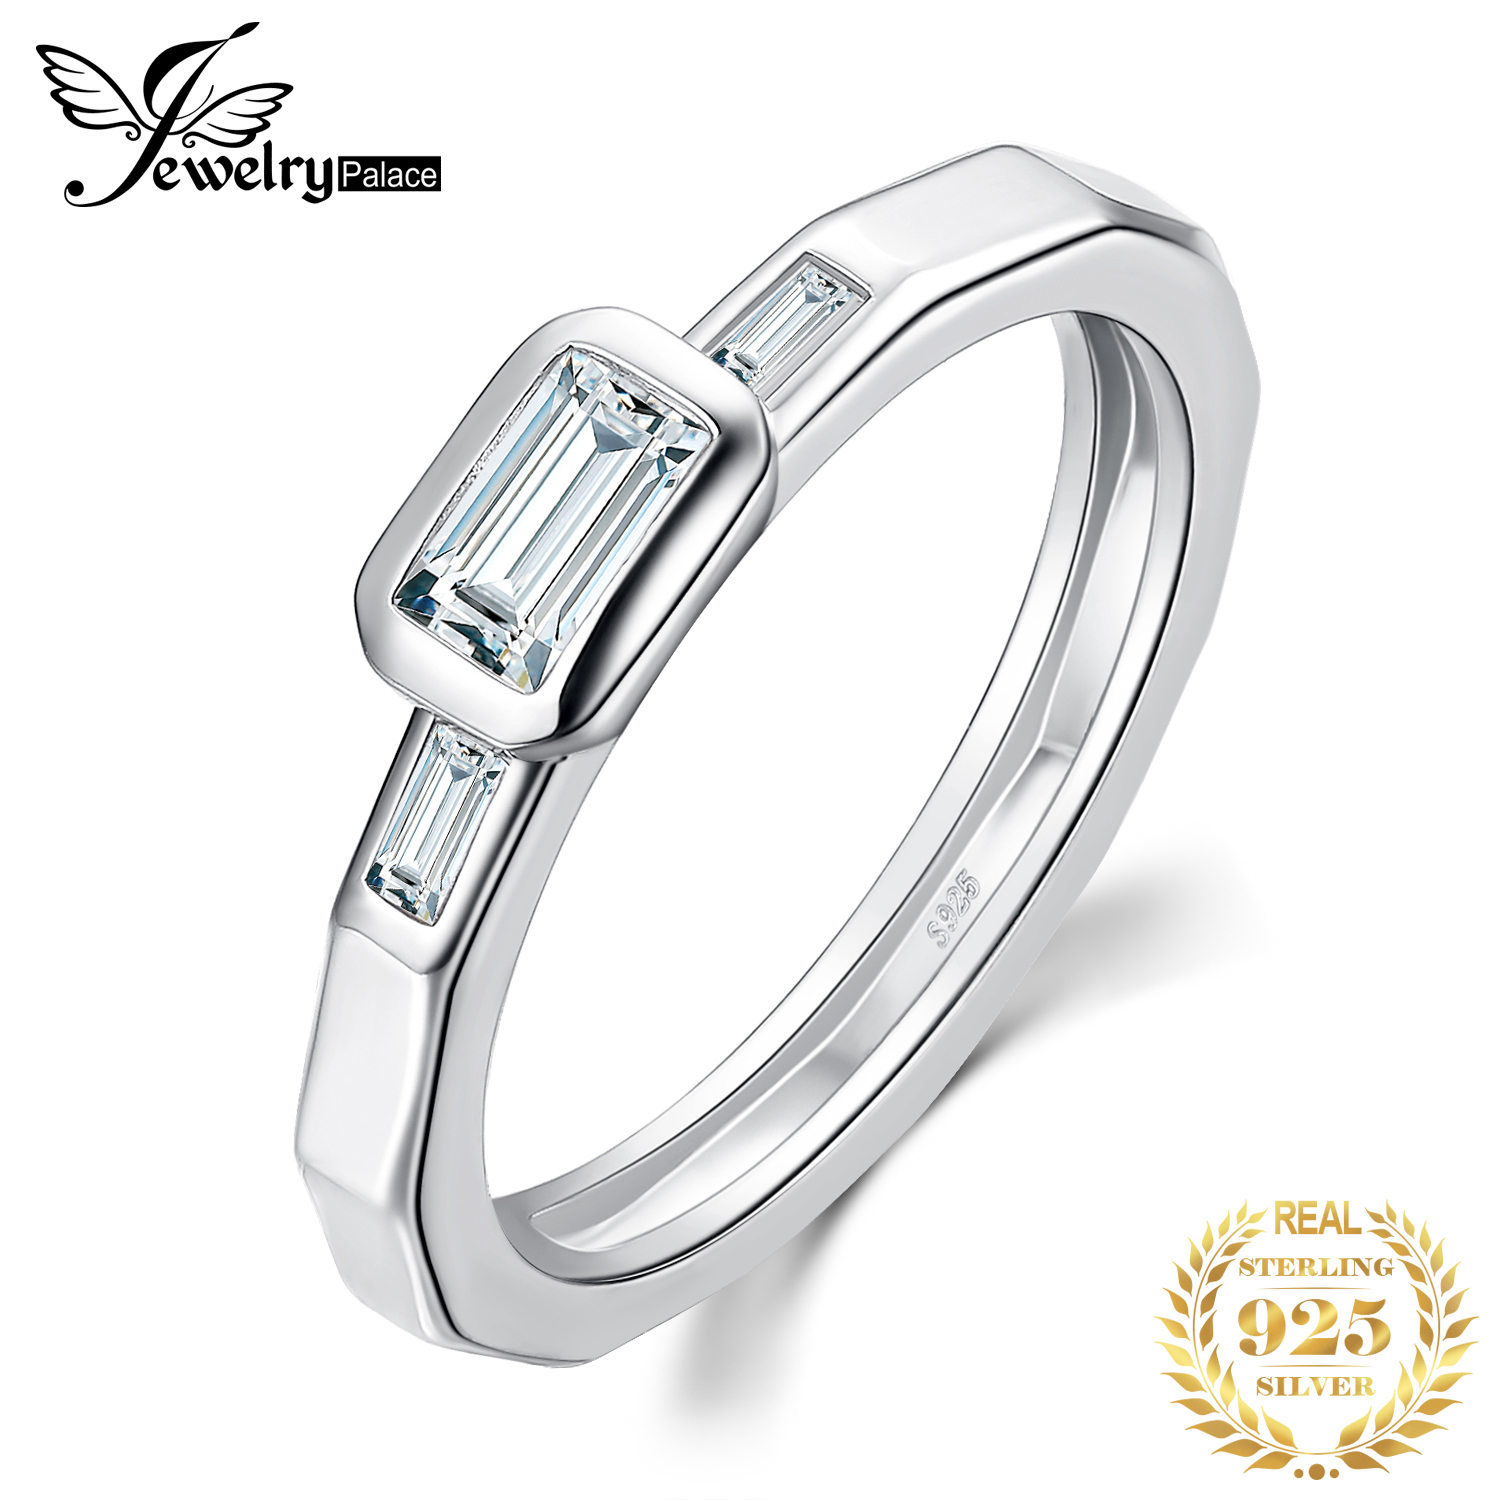 JewelryPalace 3 Stone CZ Engagement Ring 925 Sterling Silver Rings For Women Anniversary Ring Wedding Rings Silver 925 Jewelry